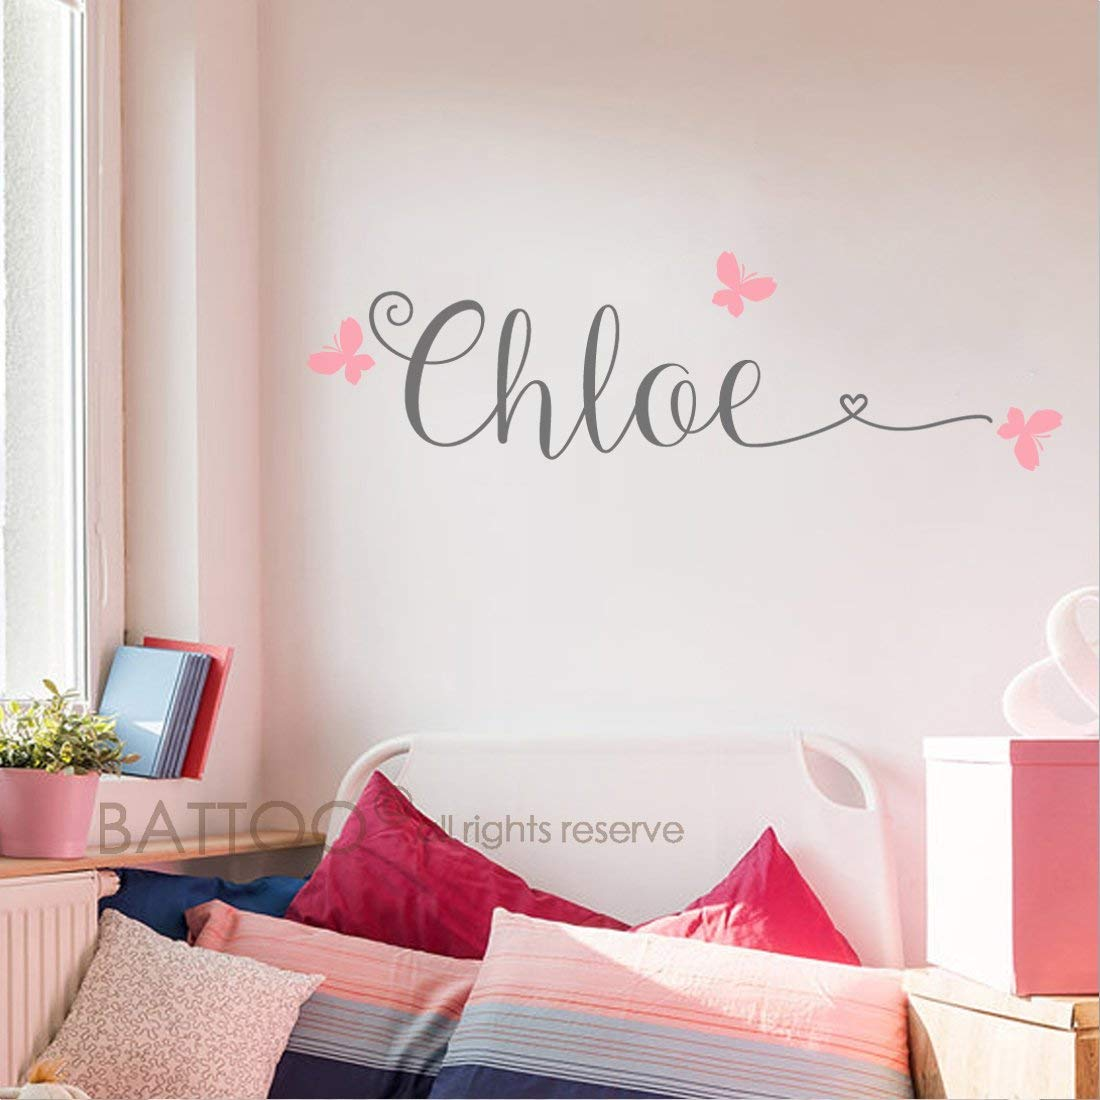 Battoo Personalized Name Wall Decals